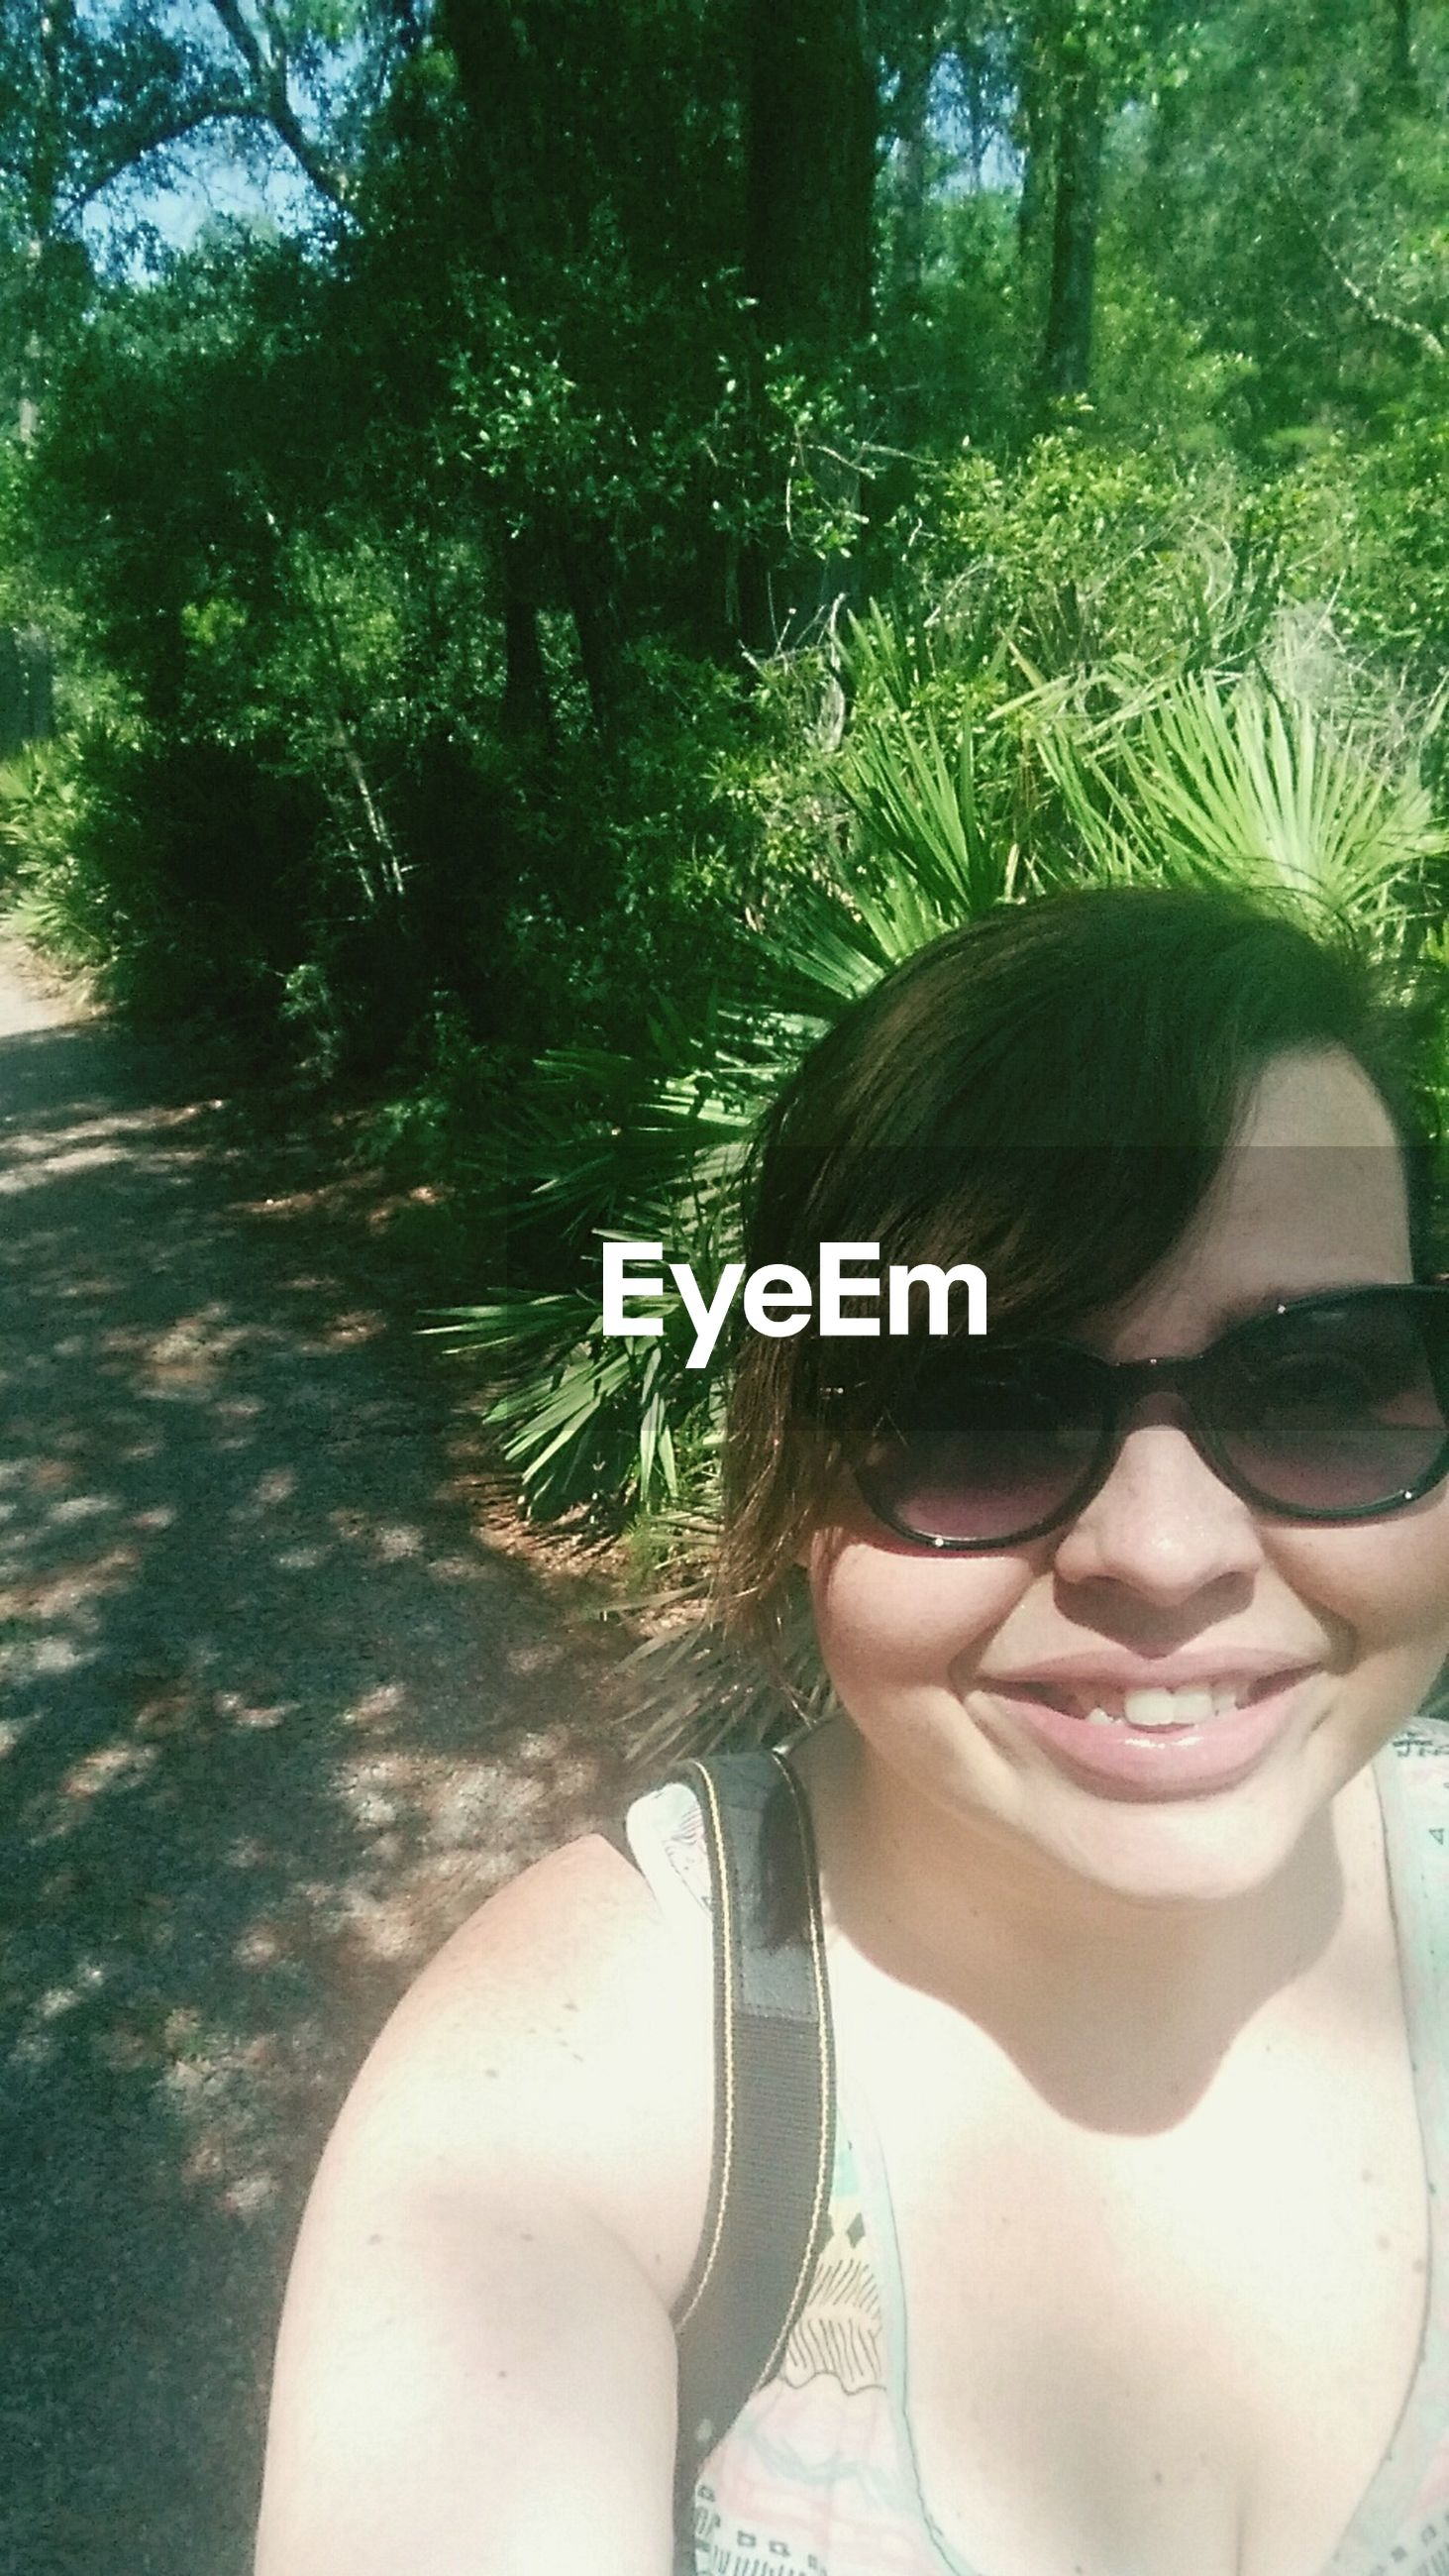 tree, person, lifestyles, leisure activity, young adult, looking at camera, park - man made space, young women, portrait, casual clothing, headshot, front view, day, smiling, sunlight, sunglasses, outdoors, growth